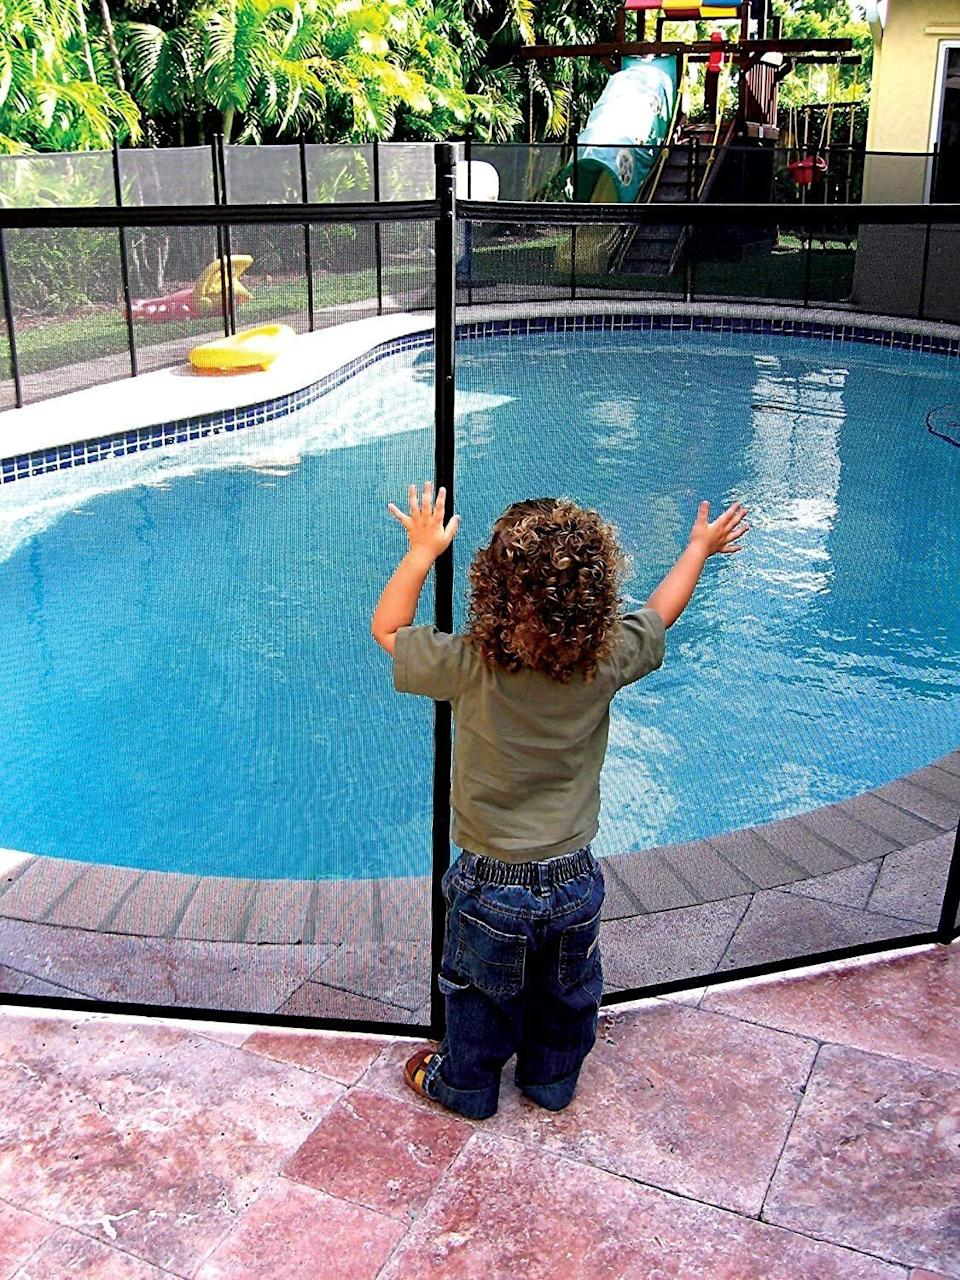 """It'ssure to go <i>swimmingly</i> with safe summer fun, even when you have a water baby who would love jumping in when grown-ups aren't around.<br /><br /><strong>Promising review:</strong>""""This is LITERALLY a lifesaver when our grandchild is here. There's no way our 18-month-old grandchild can get through this sturdy netting, which is such a relief. We roll it to the side when we're not using it, so it's perfect!<strong>If we did not have this fence, our grandchild would go right to the pool every time.</strong>Now she plays and we have no worries that she will go into the pool."""" — <a href=""""https://www.amazon.com/gp/customer-reviews/RPXQ8Z4IF4NYG?&linkCode=ll2&tag=huffpost-bfsyndication-20&linkId=d18e8ba96e8383290d6bfc884329fe57&language=en_US&ref_=as_li_ss_tl"""" target=""""_blank"""" rel=""""noopener noreferrer"""">Amazon Customer</a><br /><br /><strong><a href=""""https://www.amazon.com/dp/B004VQE1DG?&linkCode=ll1&tag=huffpost-bfsyndication-20&linkId=c93cbcae10f811dfce2695aa54e7faa3&language=en_US&ref_=as_li_ss_tl"""" target=""""_blank"""" rel=""""noopener noreferrer"""">Get it from Amazon for $92.29 (available in two colors, and two sizes).</a></strong>"""